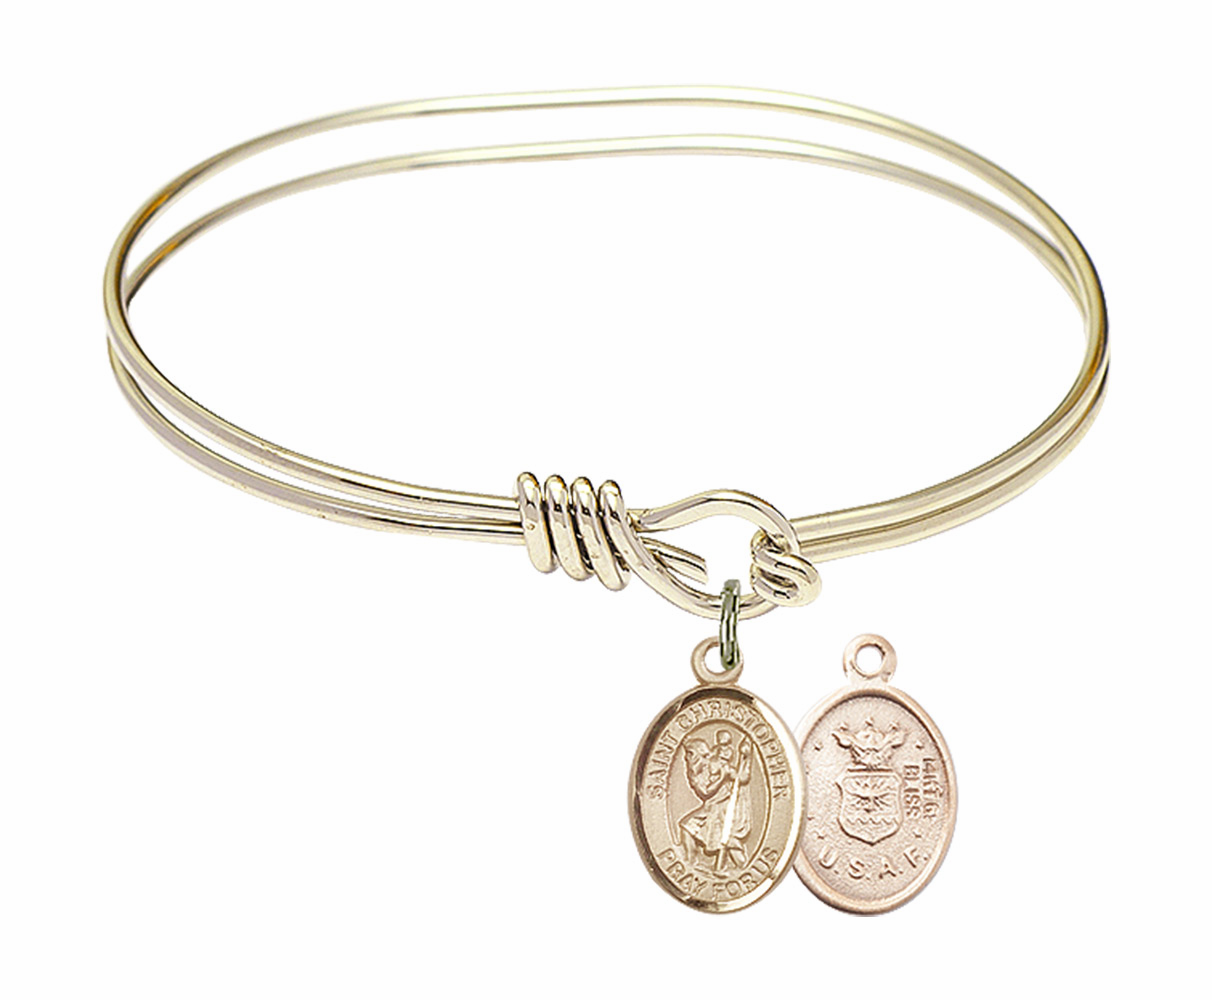 Twisted Gold-filled St Christopher Air Force Bangle Charm Bracelet by Bliss